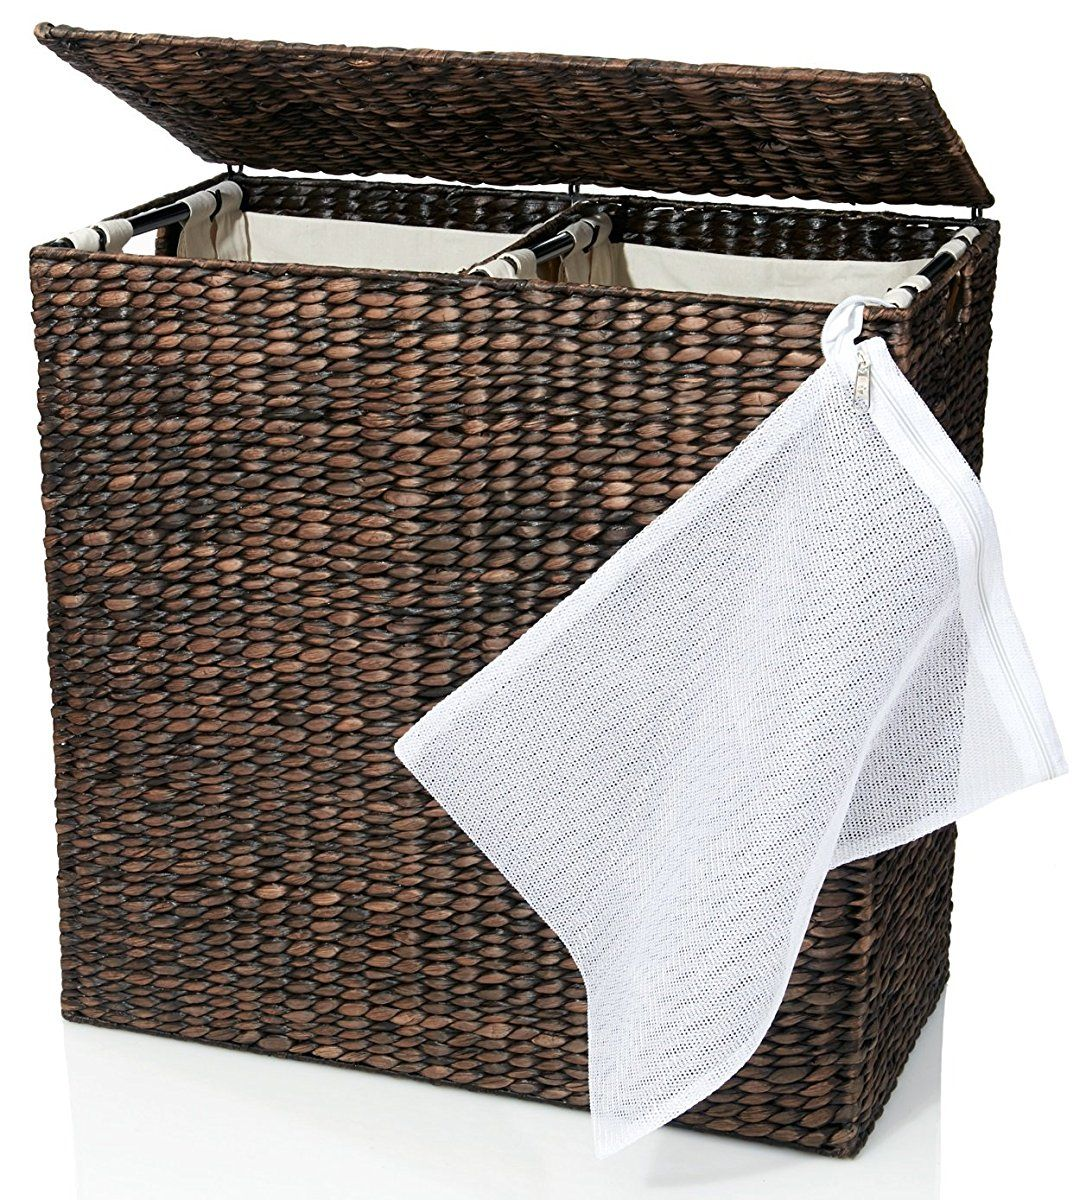 Designer Wicker Laundry Hamper With Divided Interior And Laundry